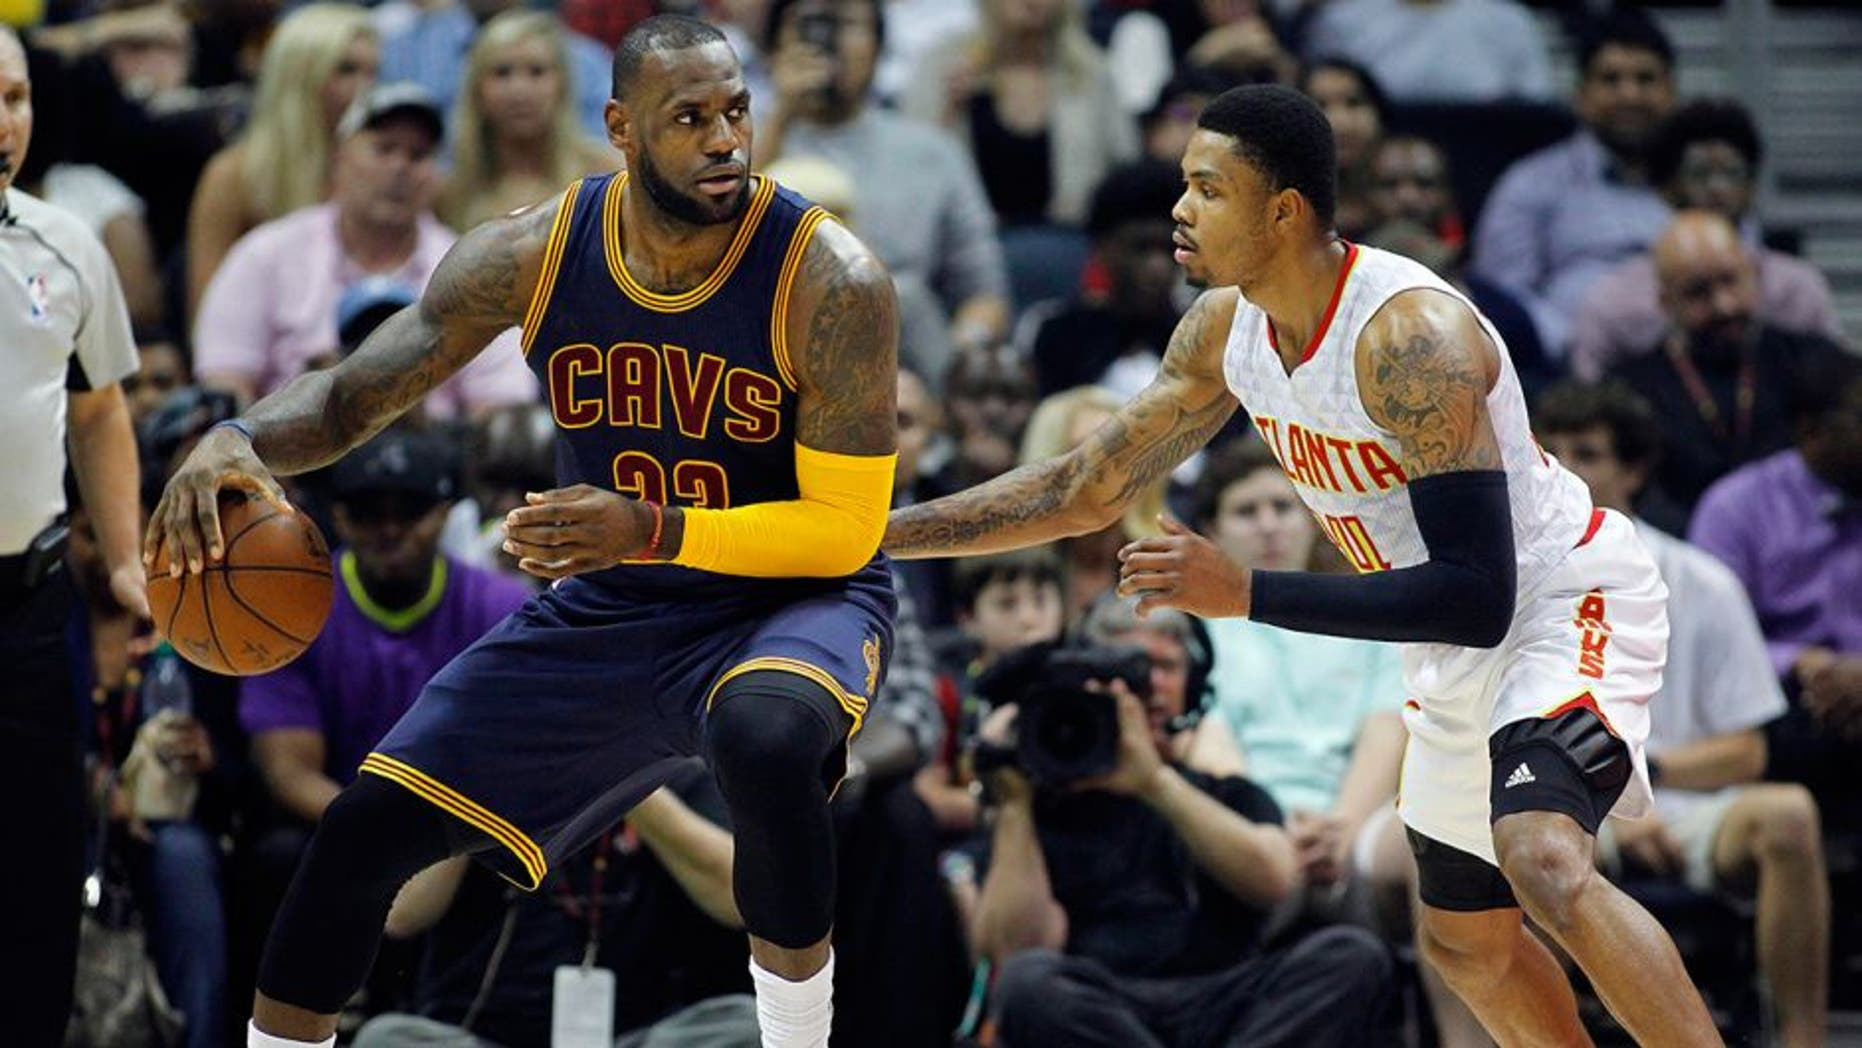 Apr 1, 2016; Atlanta, GA, USA; Cleveland Cavaliers forward LeBron James (23) is defended by Atlanta Hawks forward Kent Bazemore (24) in the first quarter at Philips Arena. Mandatory Credit: Brett Davis-USA TODAY Sports